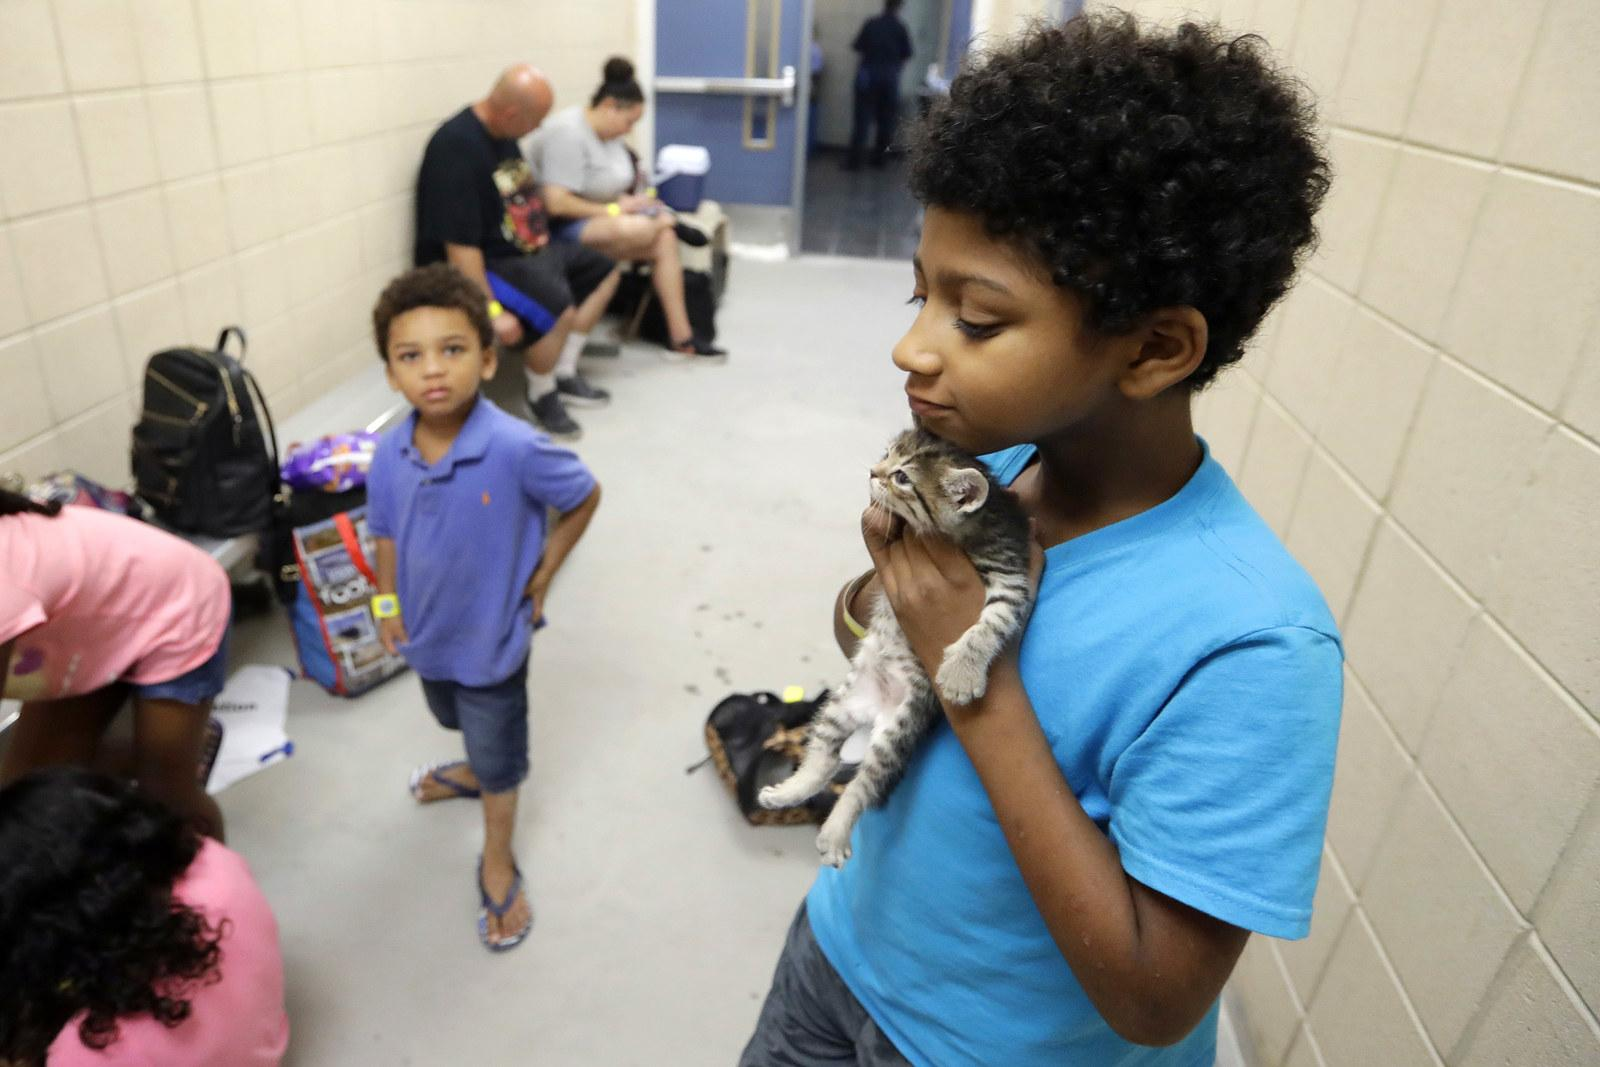 Keedan Garcia, 8, holds his kitten as he waits with his family to be evacuated in Corpus Christi, Texas, on Aug. 25.